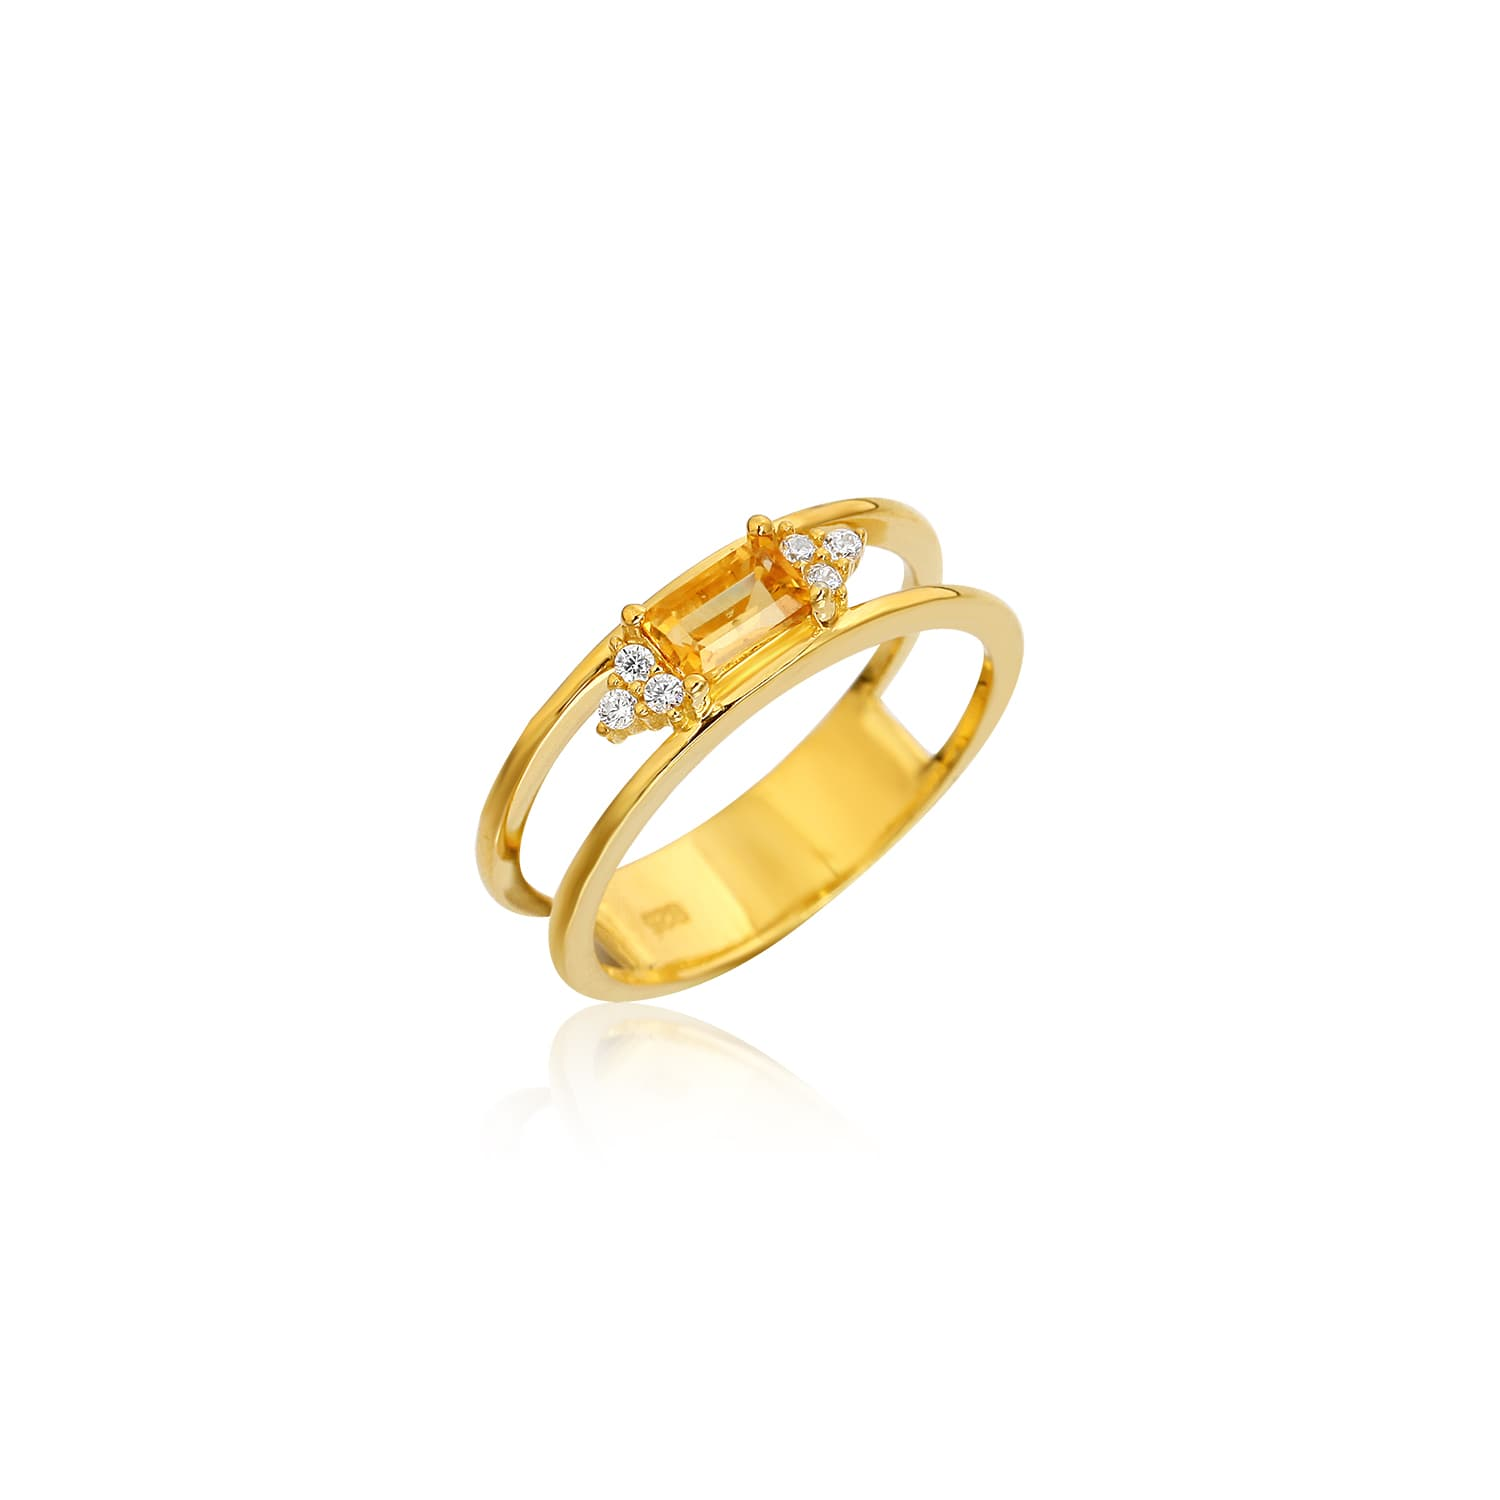 Real gold plated Citrine stone ring models on silver